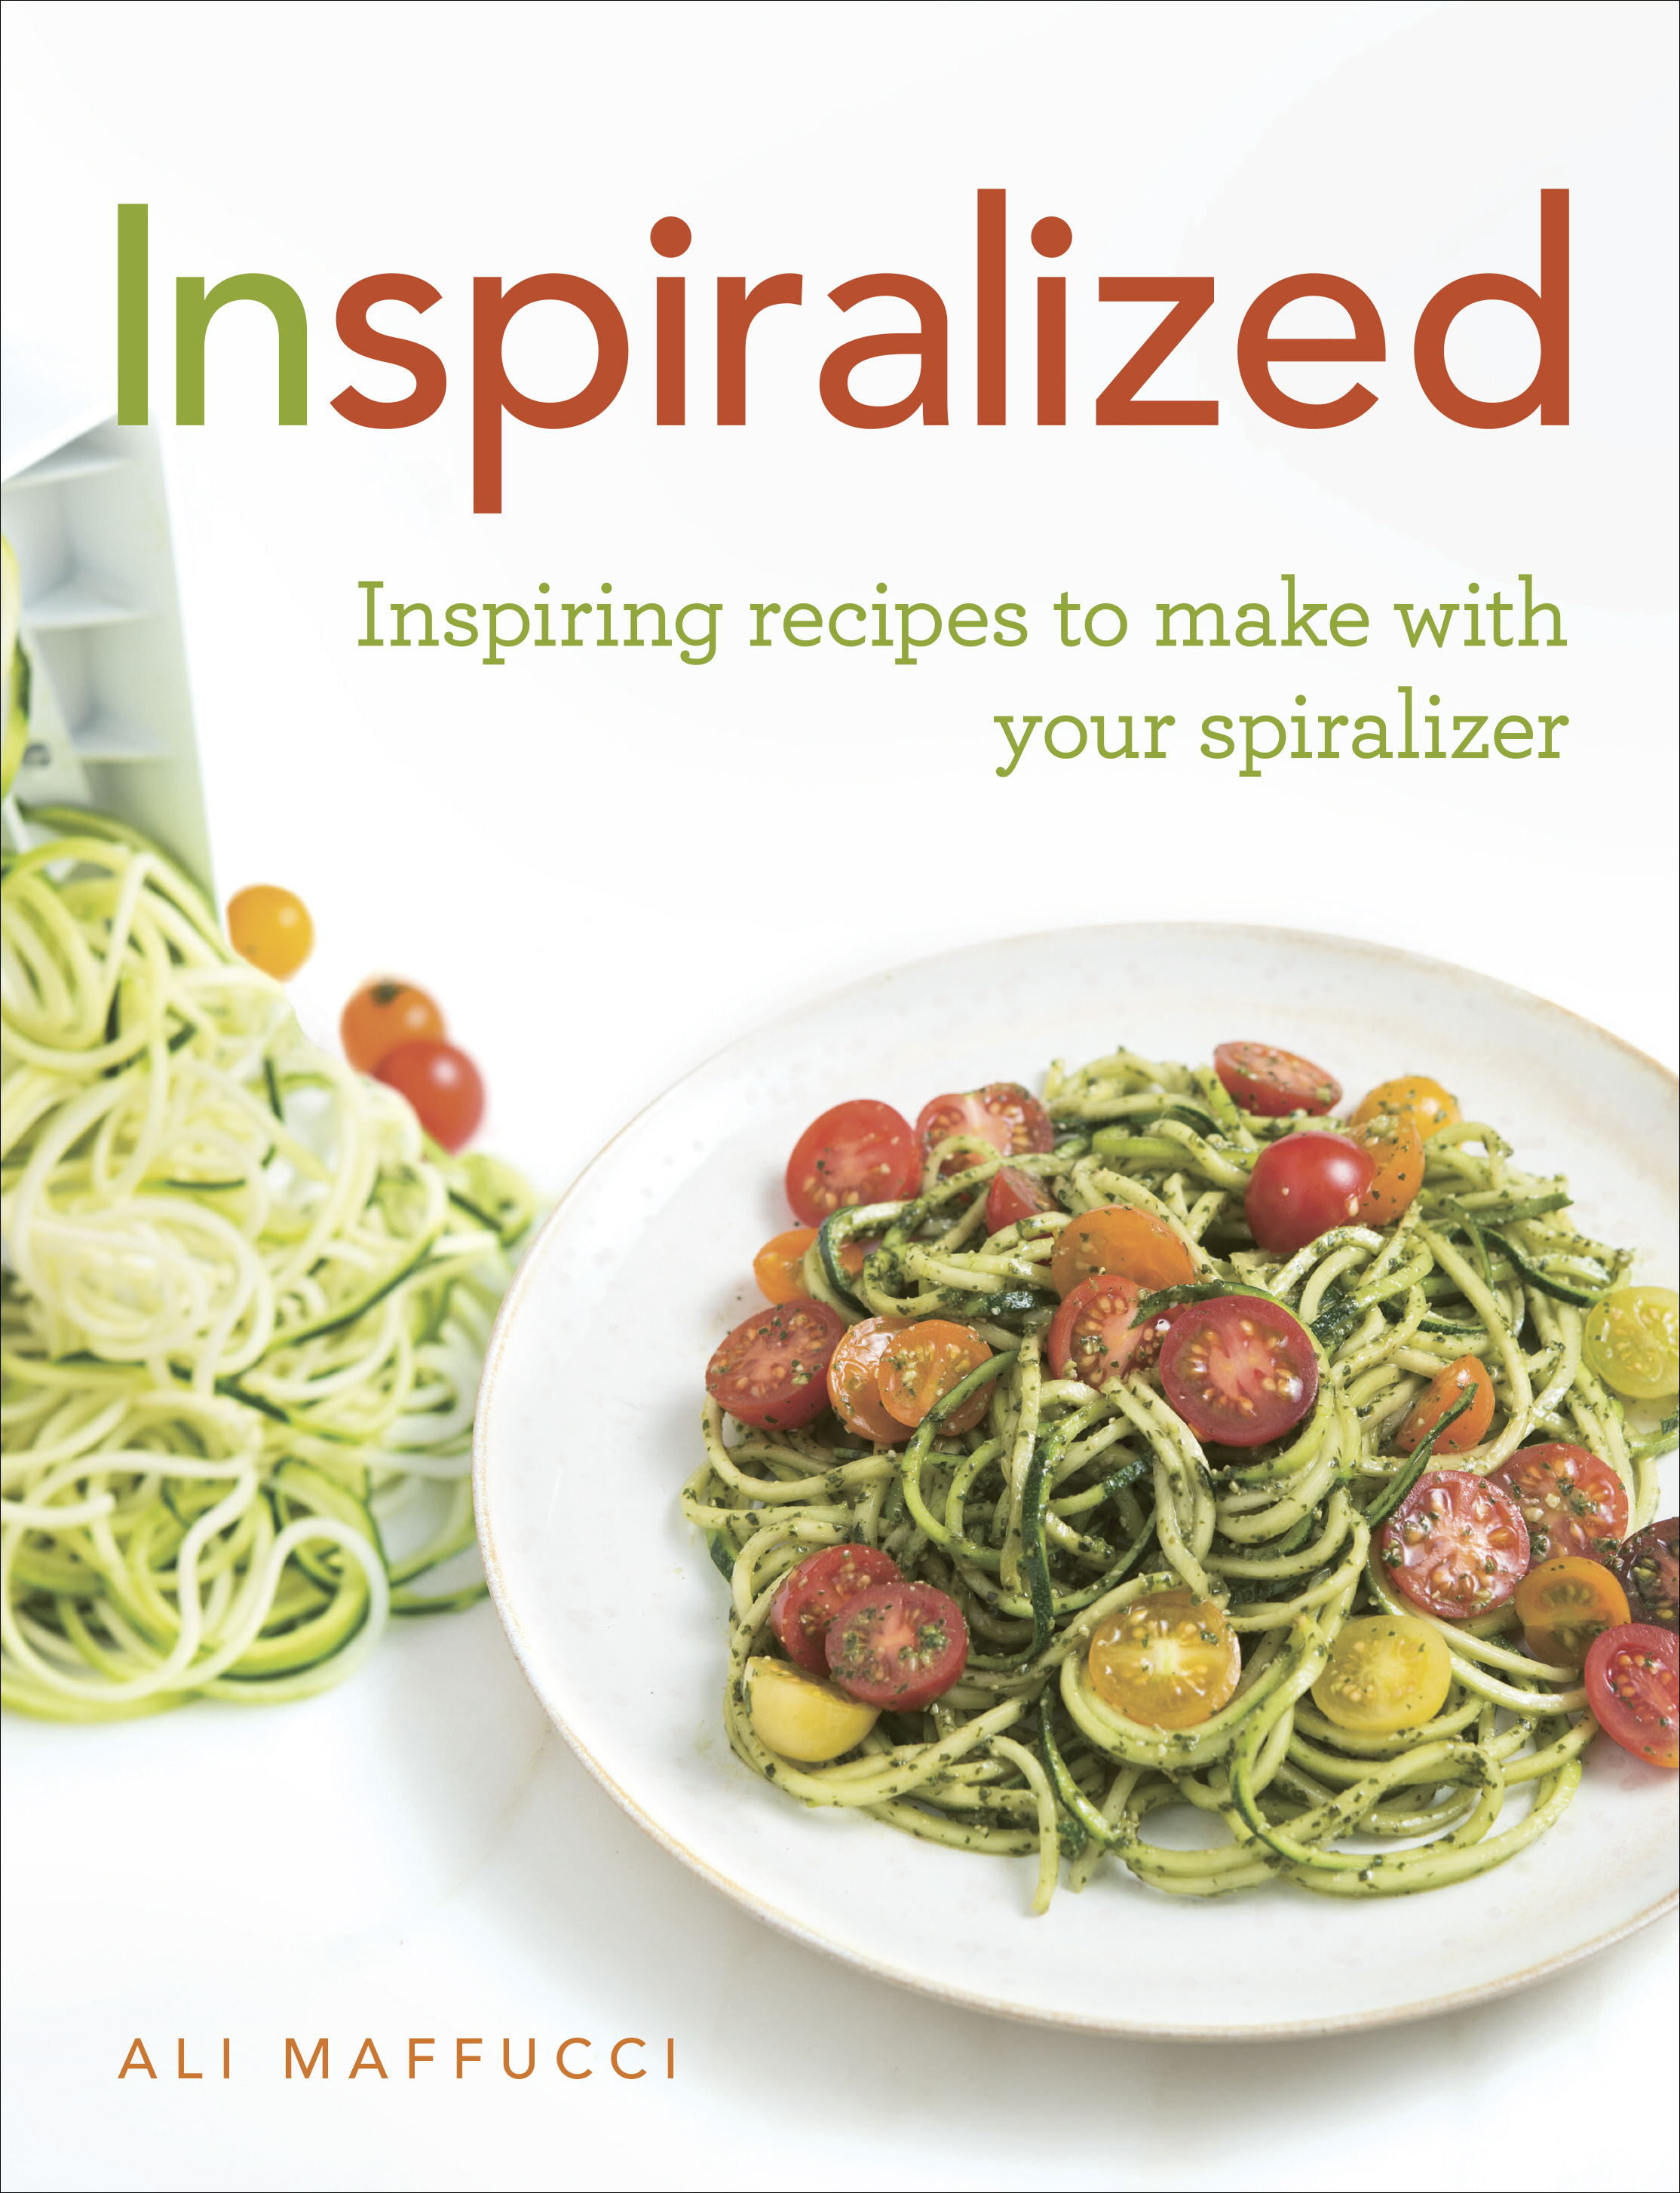 Inspiralized Inspiring recipes to make with your spiralizer